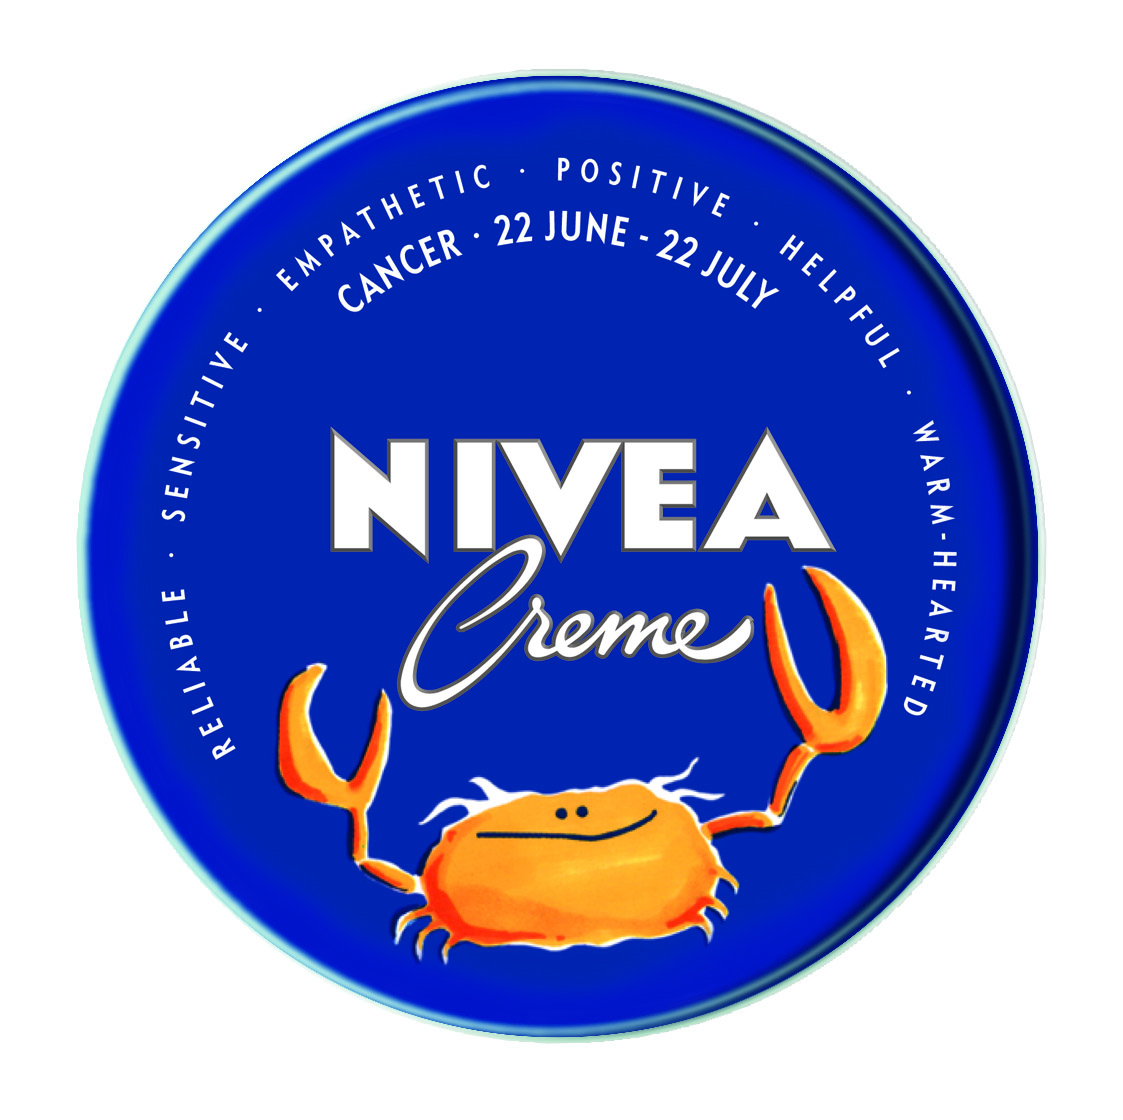 NIVEA Creme Cancer.jpg